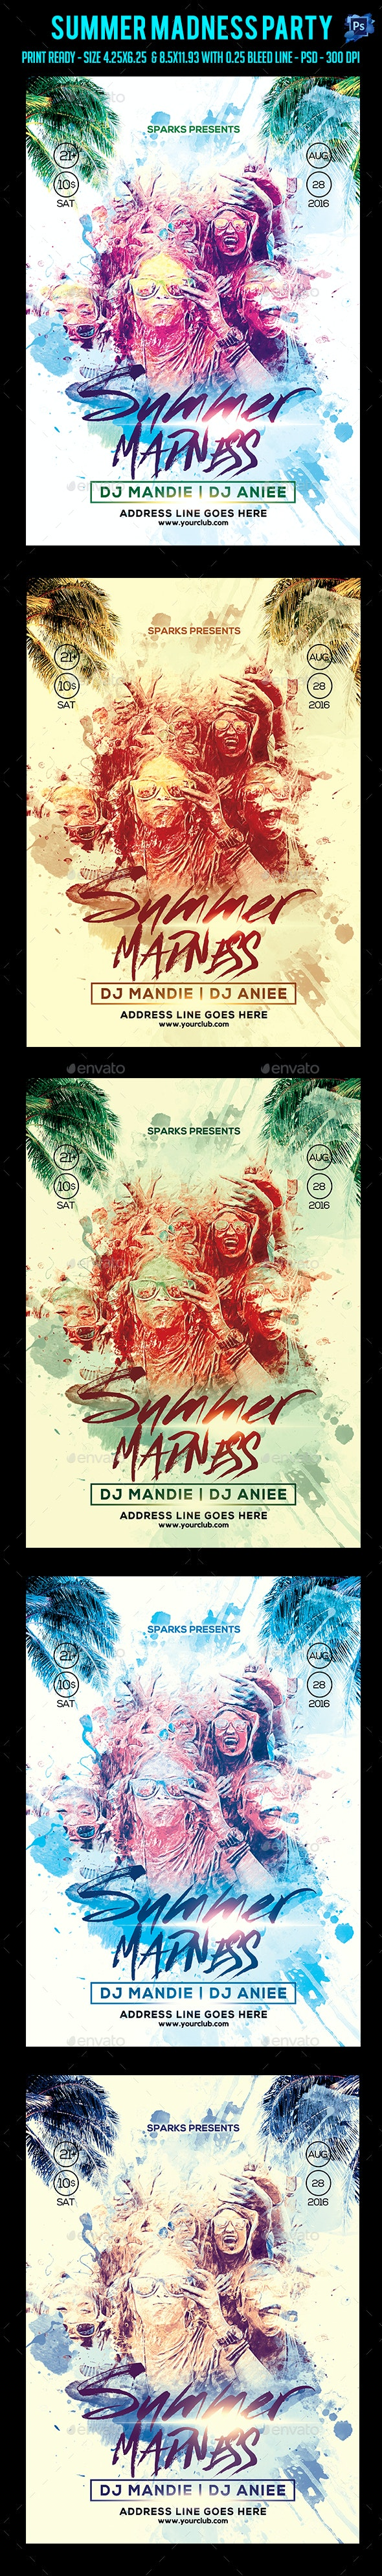 Summer Madness Party Flyer  - Clubs & Parties Events